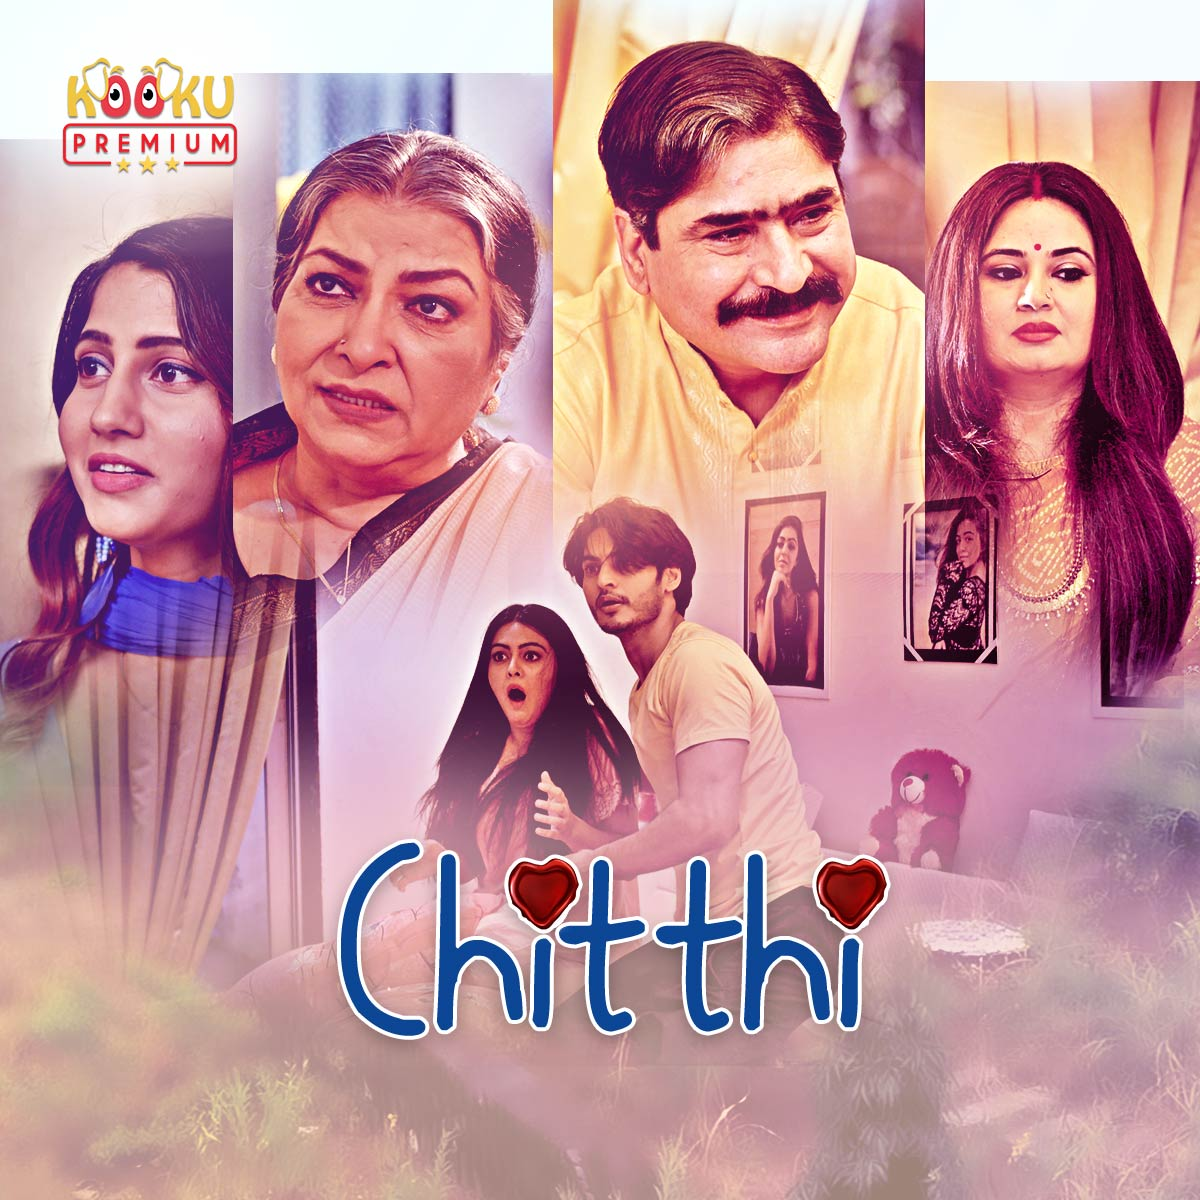 Chitthi 2020 S01 Hindi Kooku App Web Series Official Trailer 1080p HDRip 40MB Download